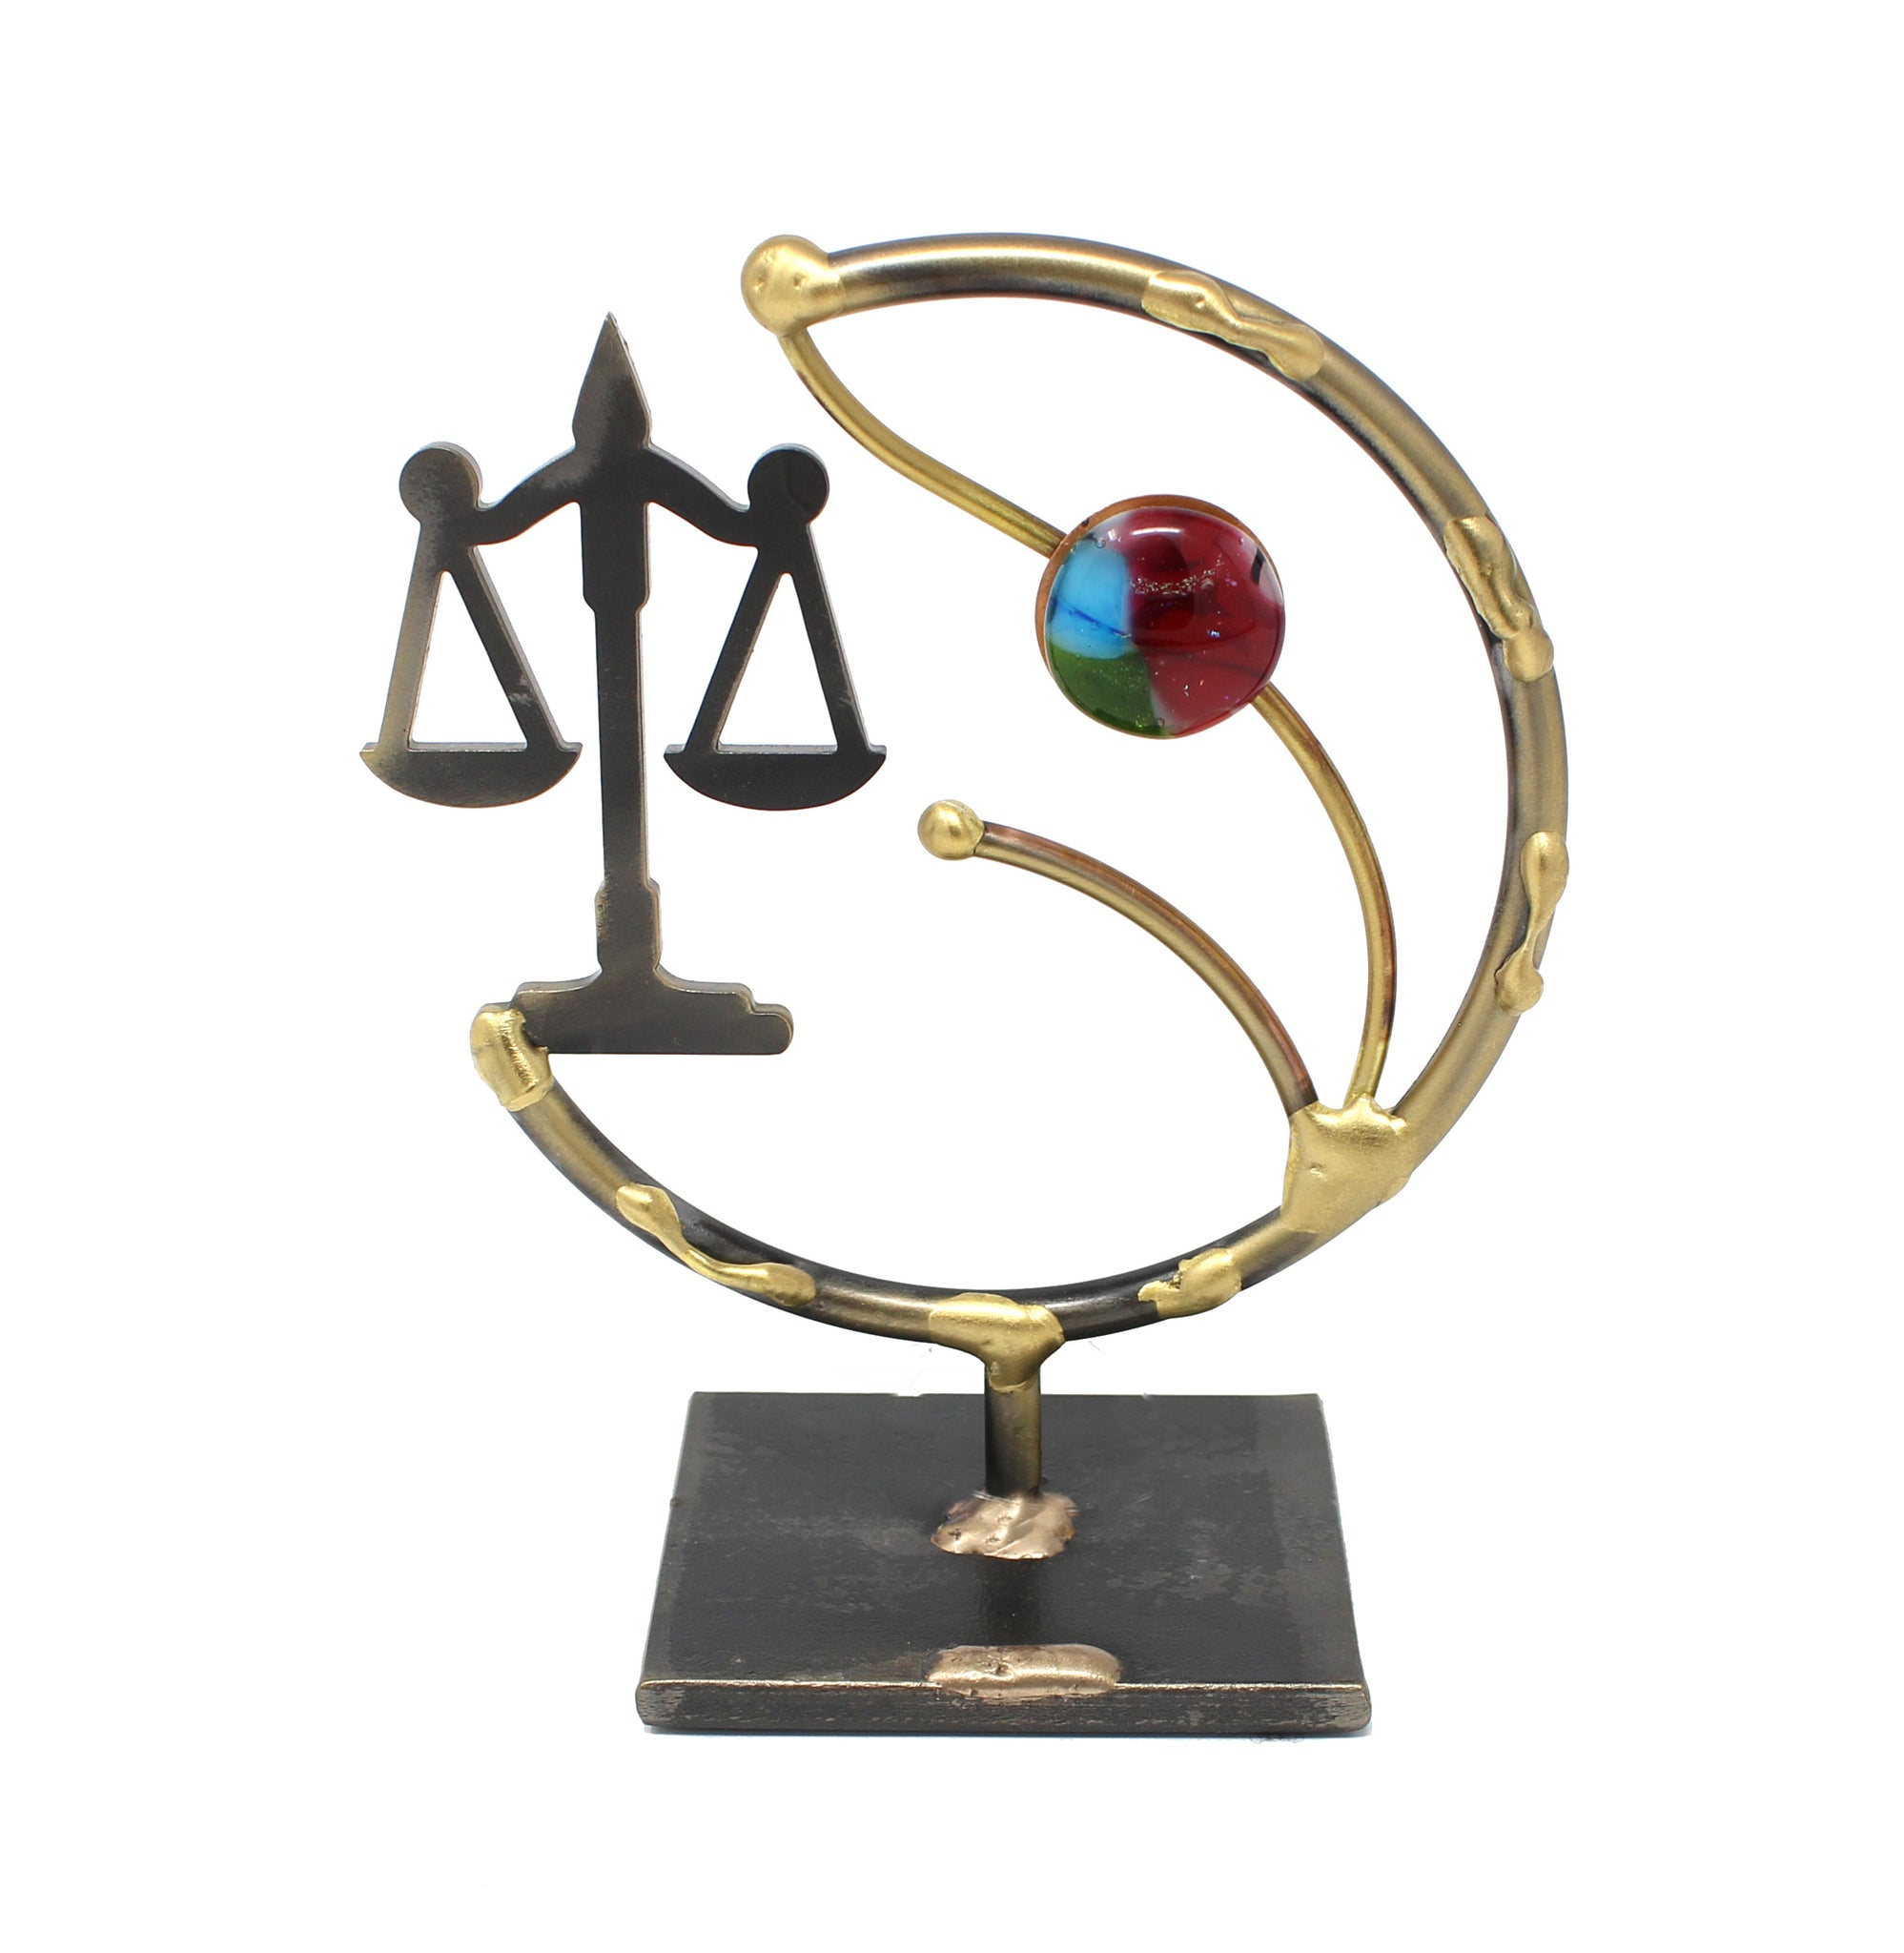 Lawyer Sculpture by Gary Rosenthal